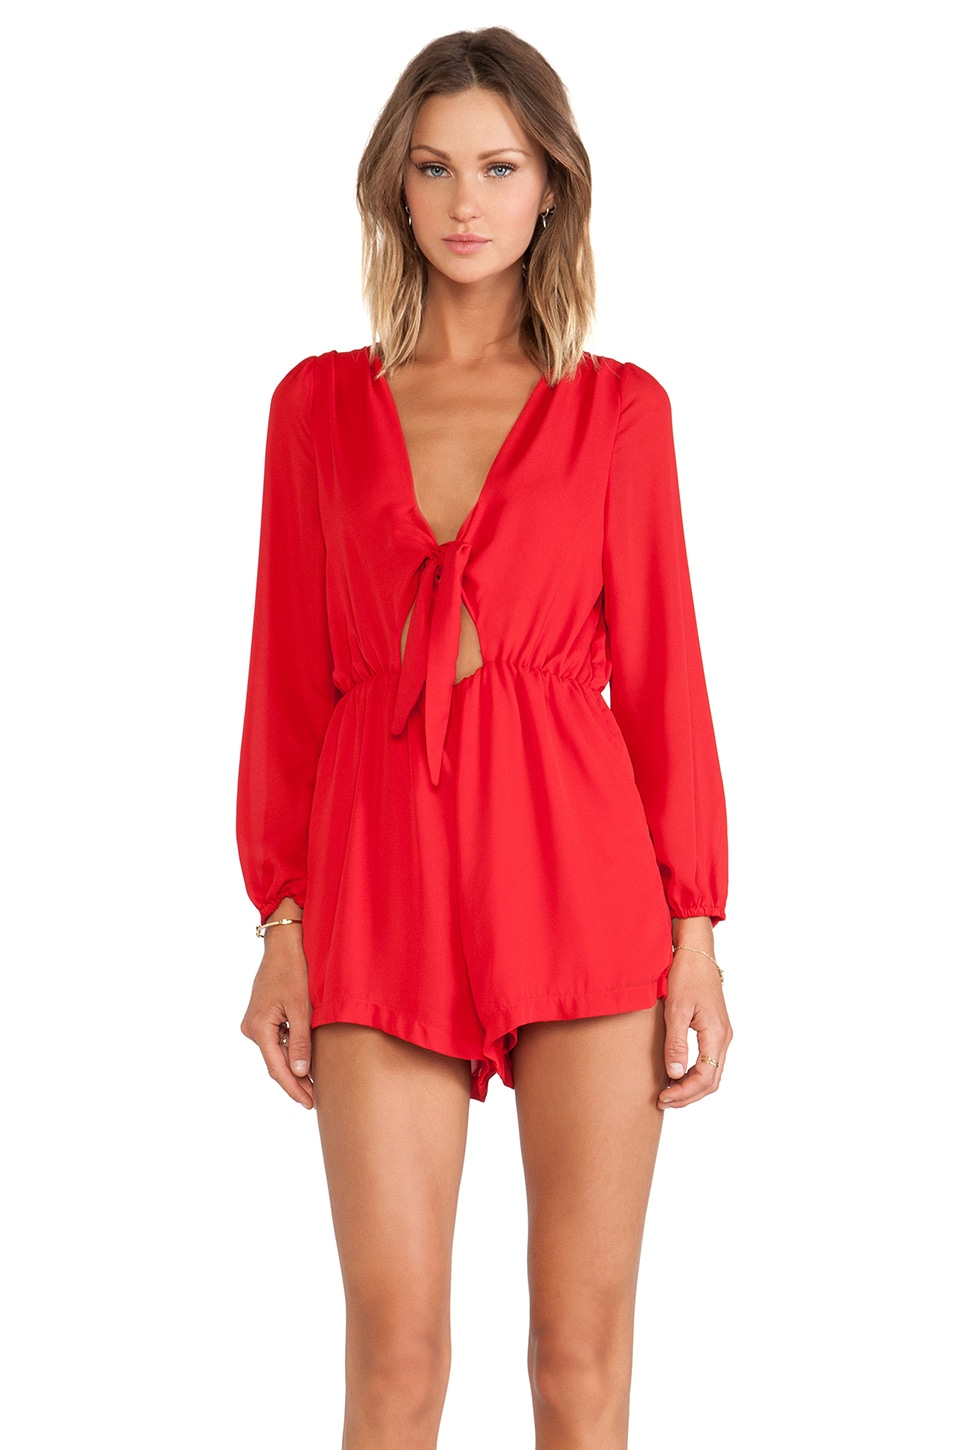 WYLDR Take the Lead Playsuit in Red